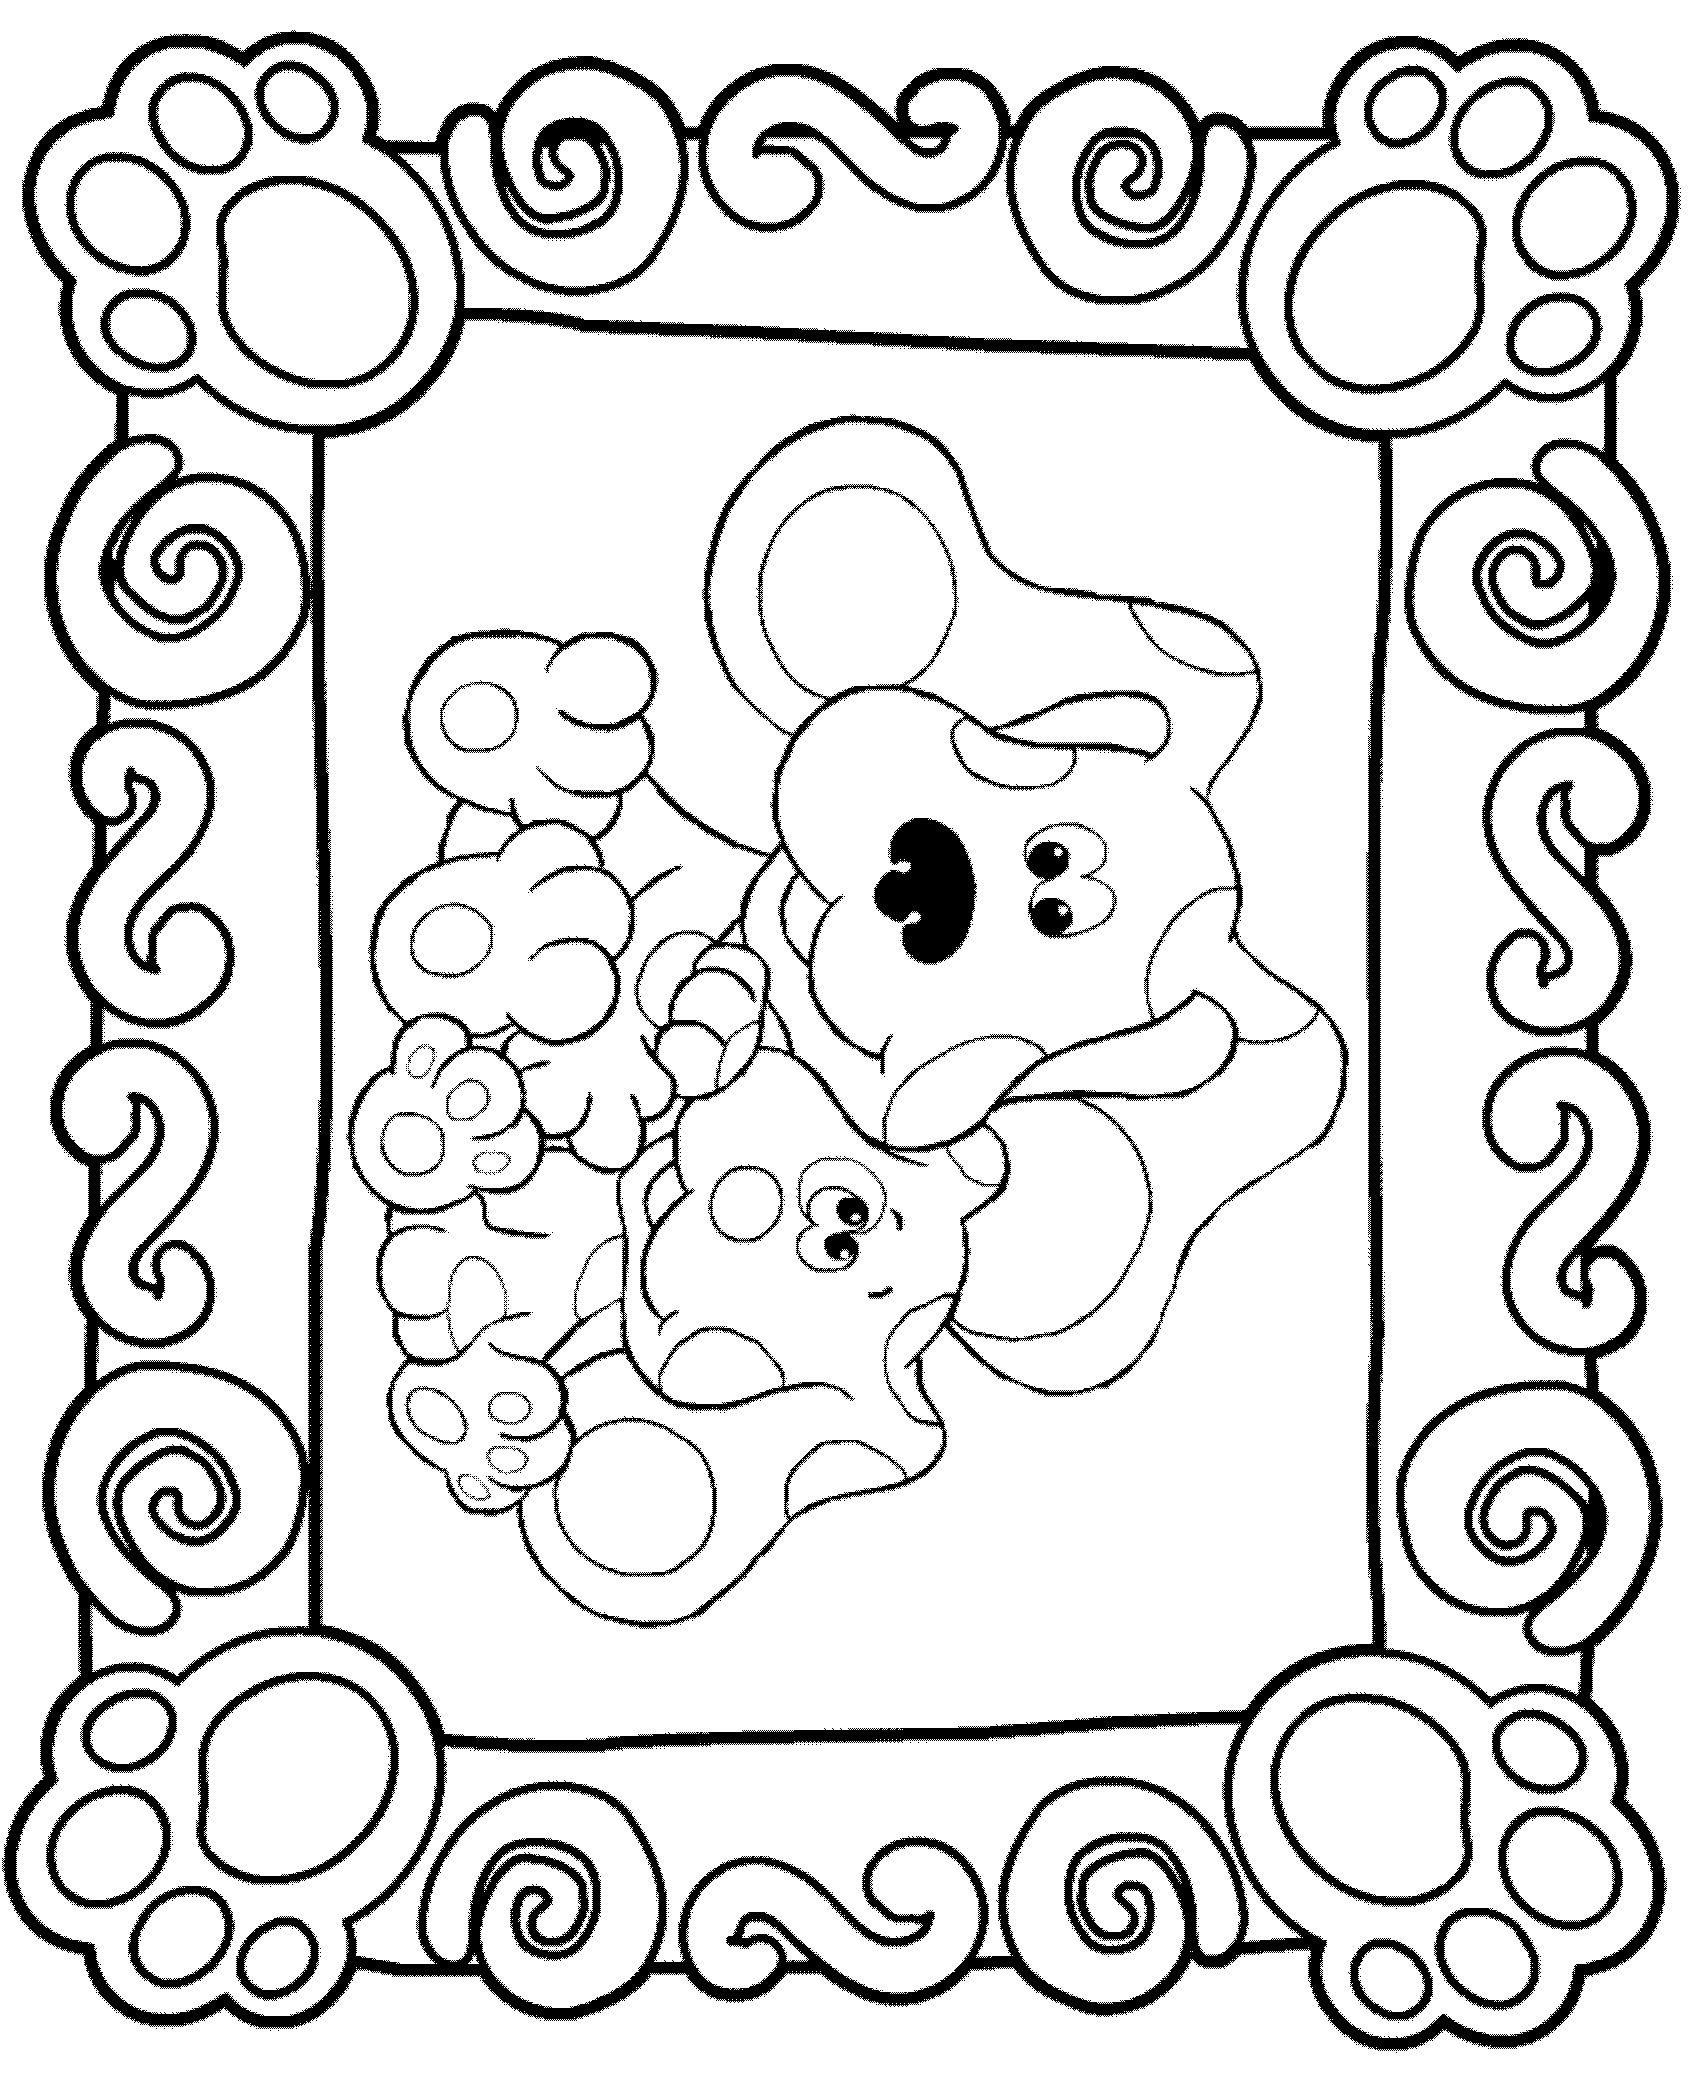 Kids N Fun Kleurplaat Blues Clues Blue S Clues Birthday Coloring Pages Nick Jr Coloring Pages Blues Clues